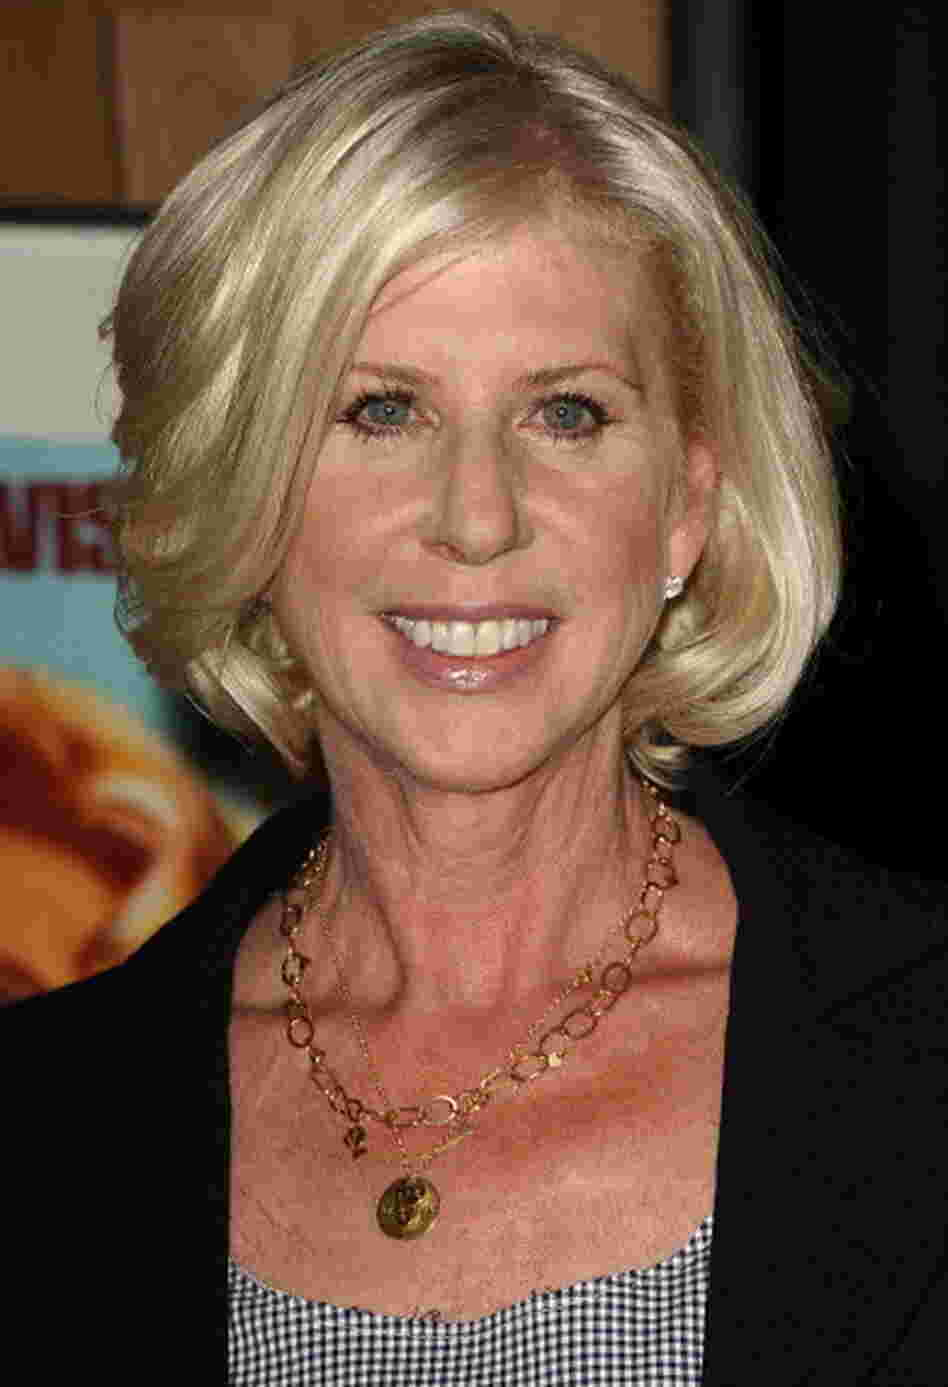 Callie Khouri is the creator of the new ABC TV show Nashville.